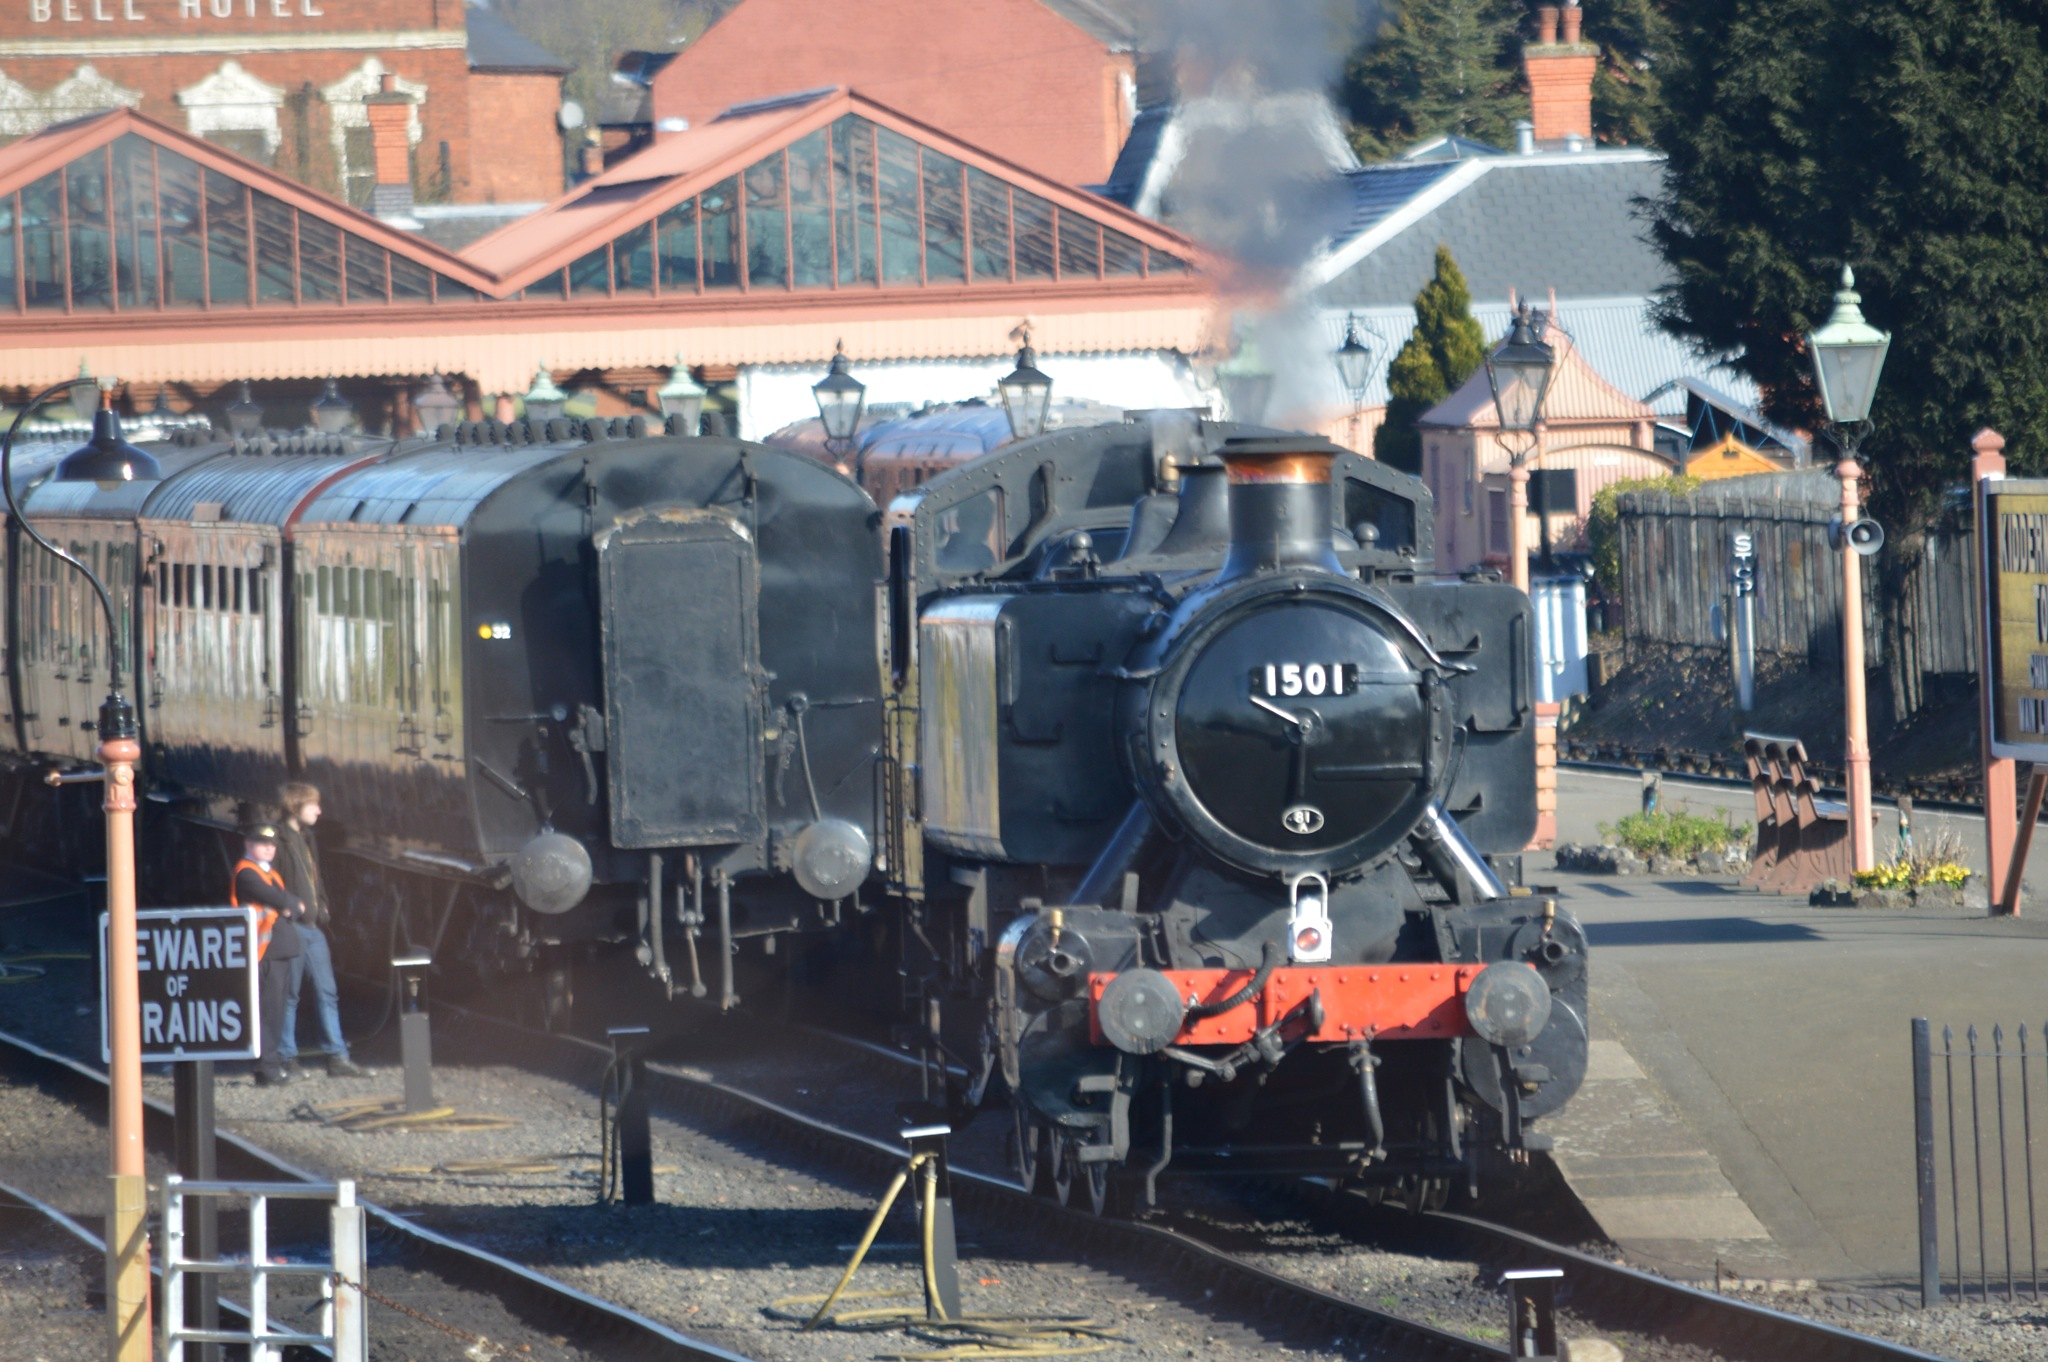 1501 At Kidderminster by adrian.williams.58323